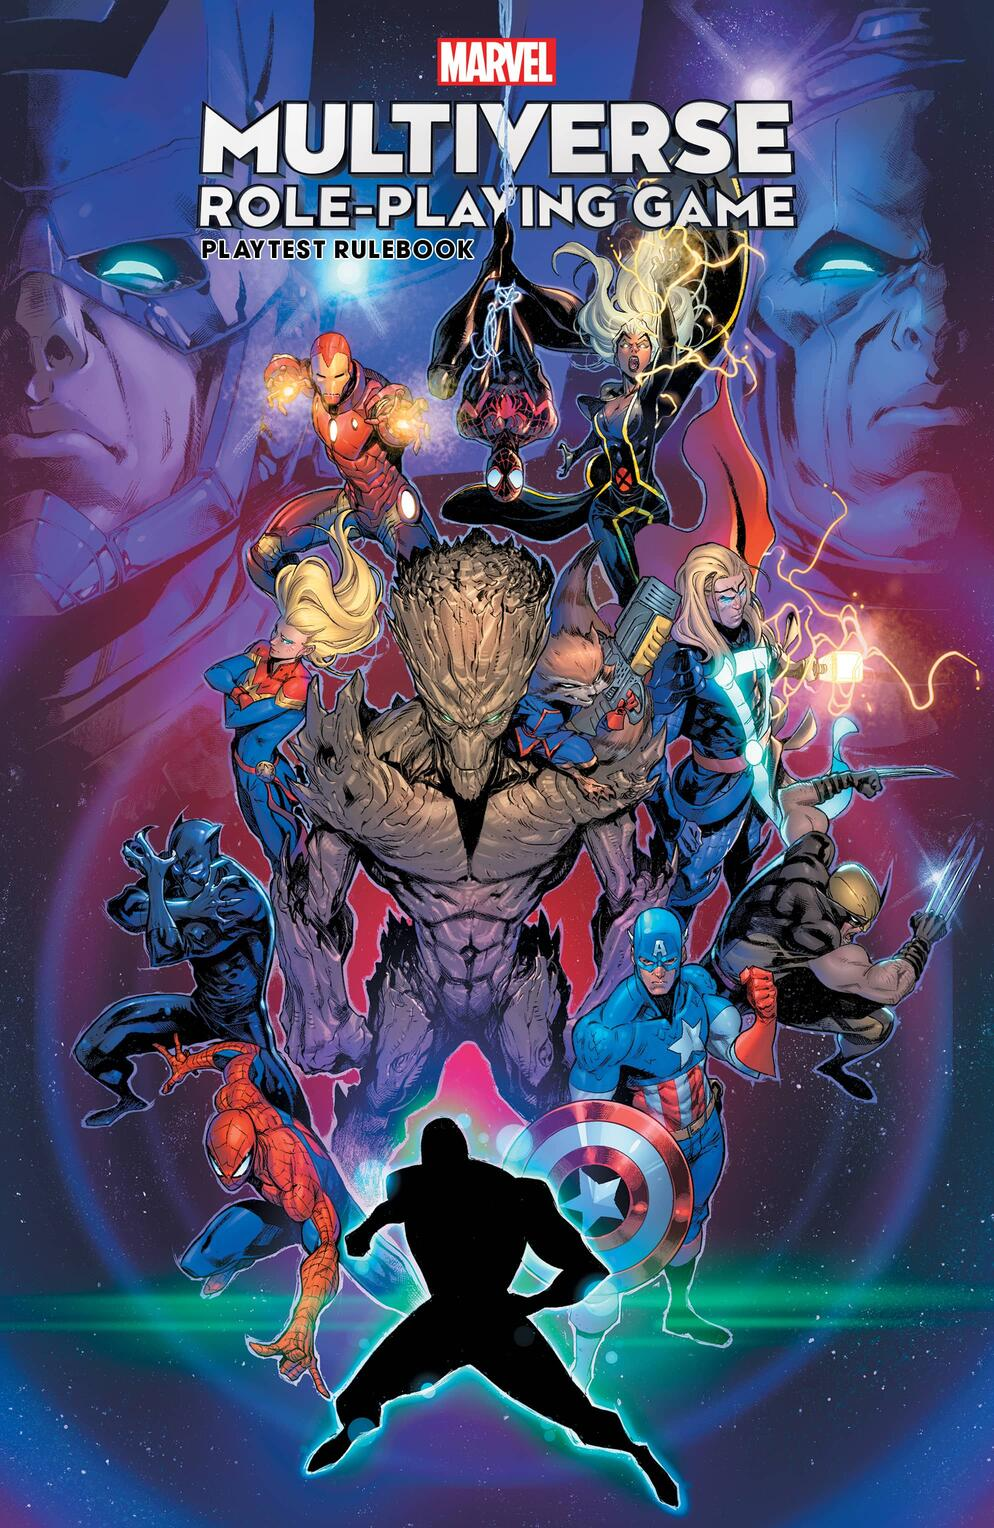 Marvel Multiverse Role-Playing Game - Marvel